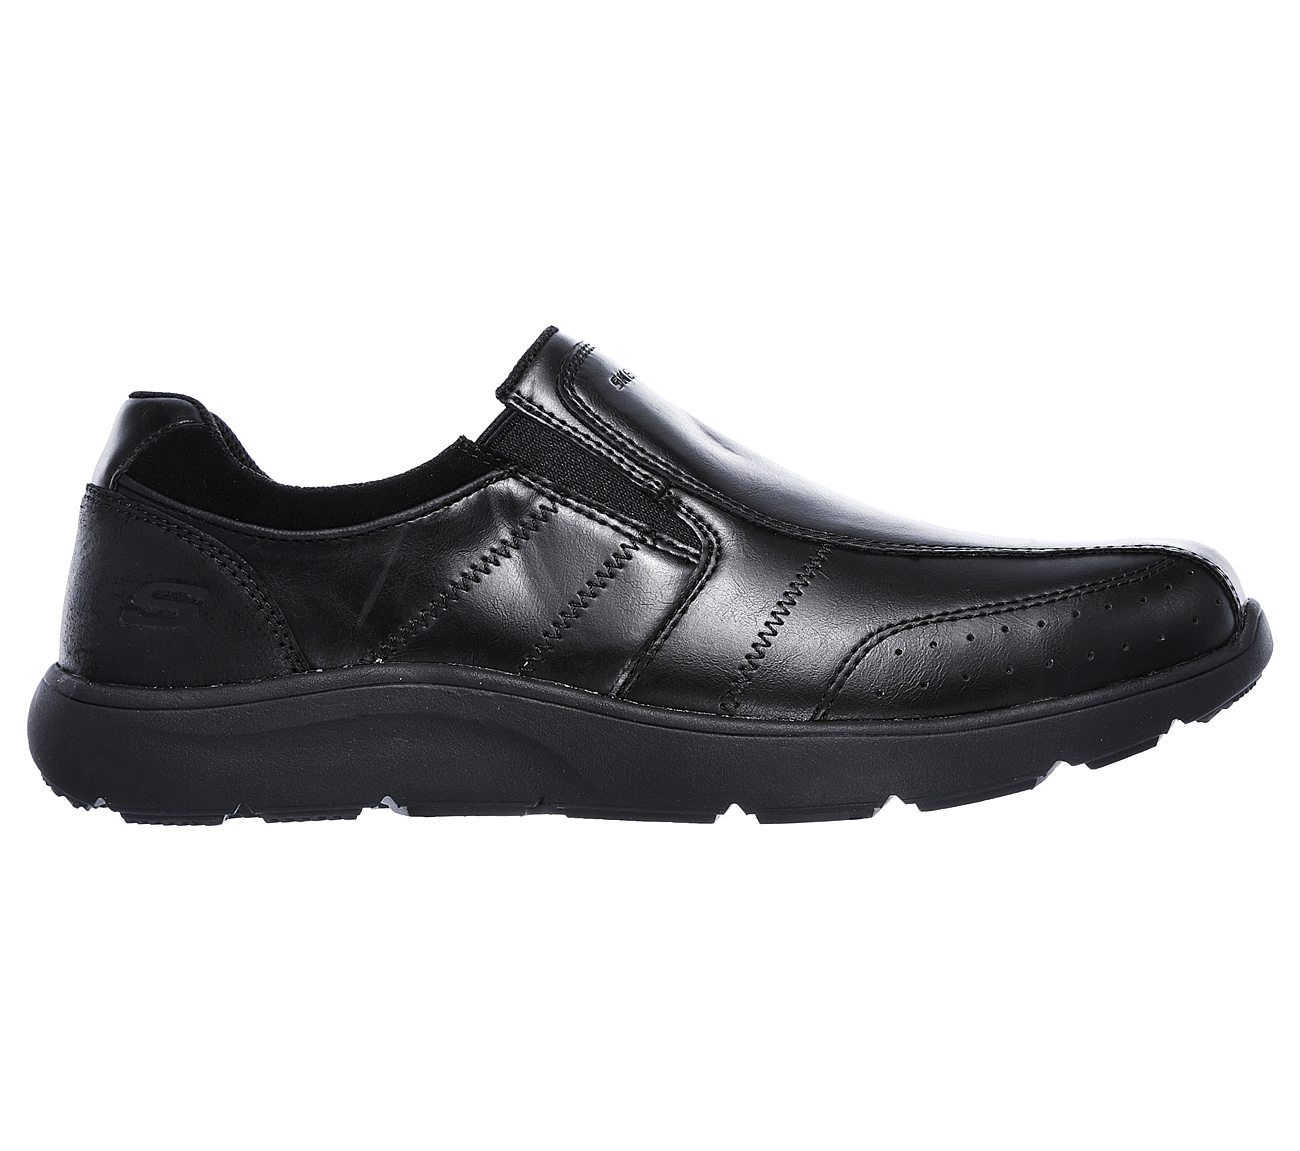 23ea12a15cac Buy SKECHERS Relaxed Fit  Montego - Alvaro Relaxed Fit Shoes only  70.00